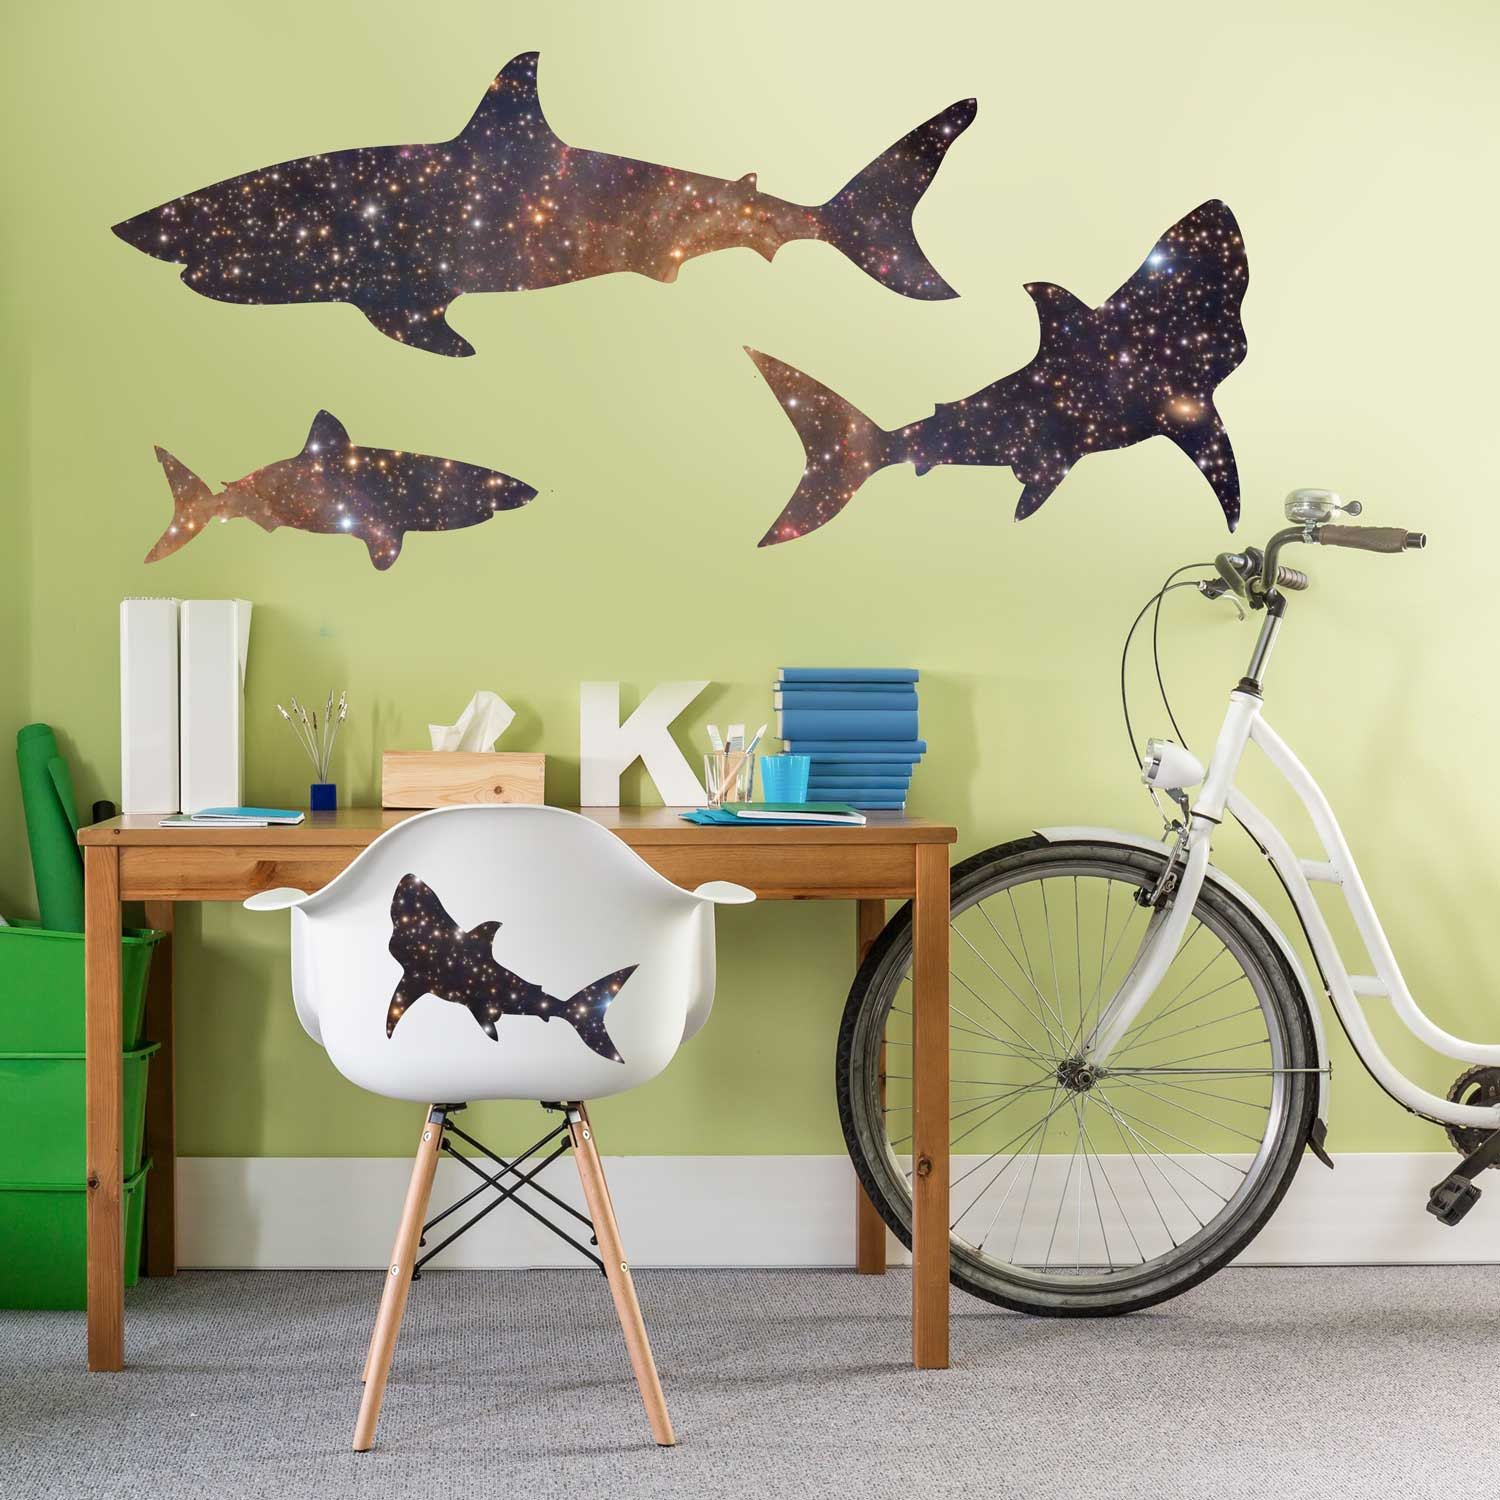 Shark Wall Decor Images - home design wall stickers